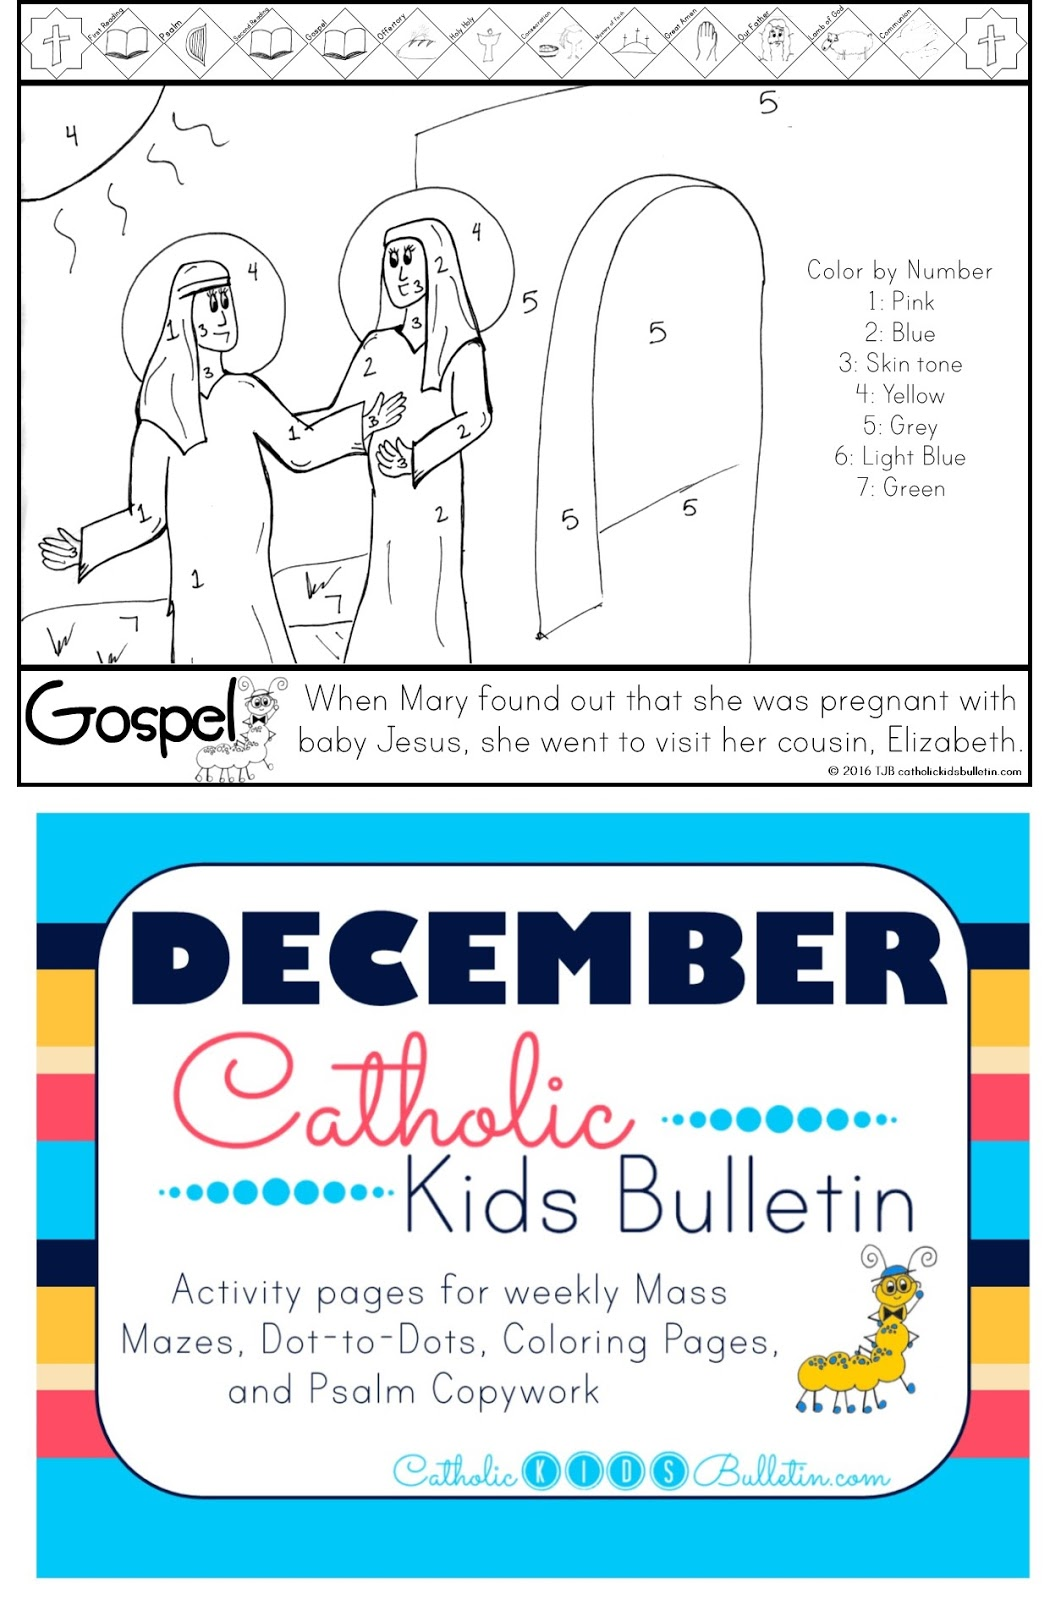 2 December Catholic Kids Bulletin Immaculate Conception Visitation with Saint Elizabeth